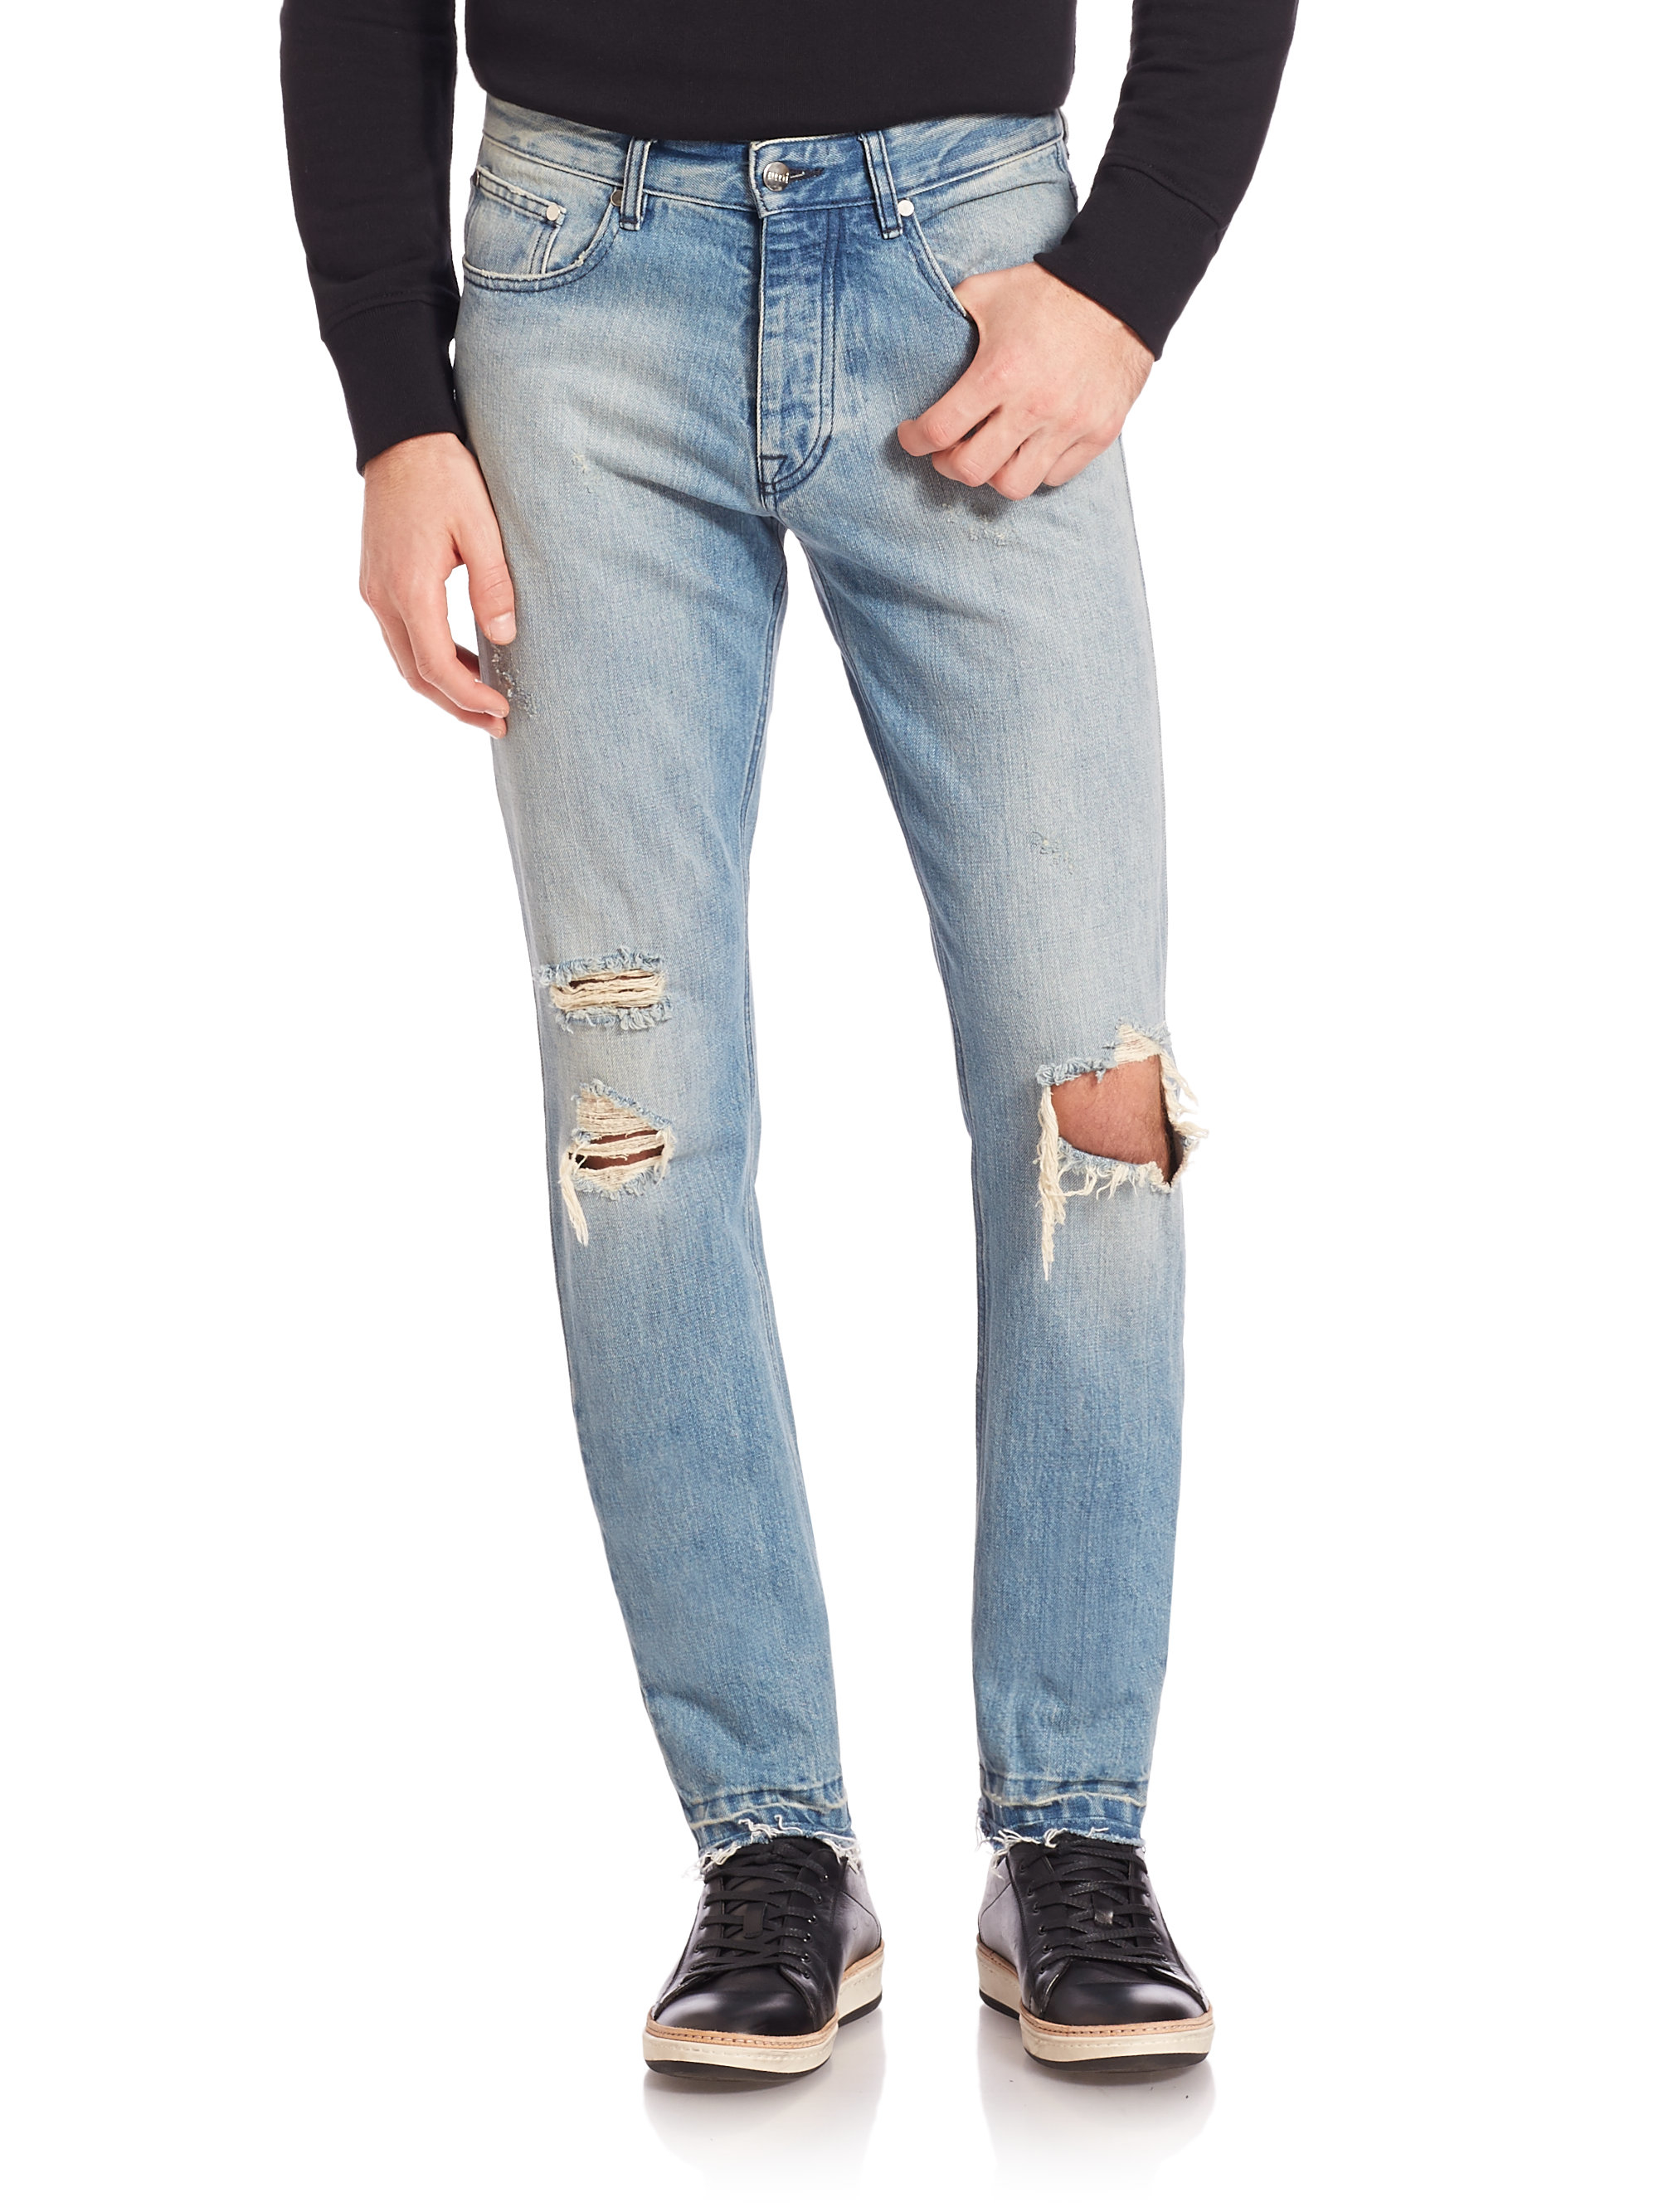 Distressed jeans for women are available with a variety of options. From low rise to super high rise, you can find distressed and destroyed jeans to suit any style. Additionally, you can choose to get ripped skinny jeans for women or go with a looser, more casual fit like boyfriend jeans or mom jeans.